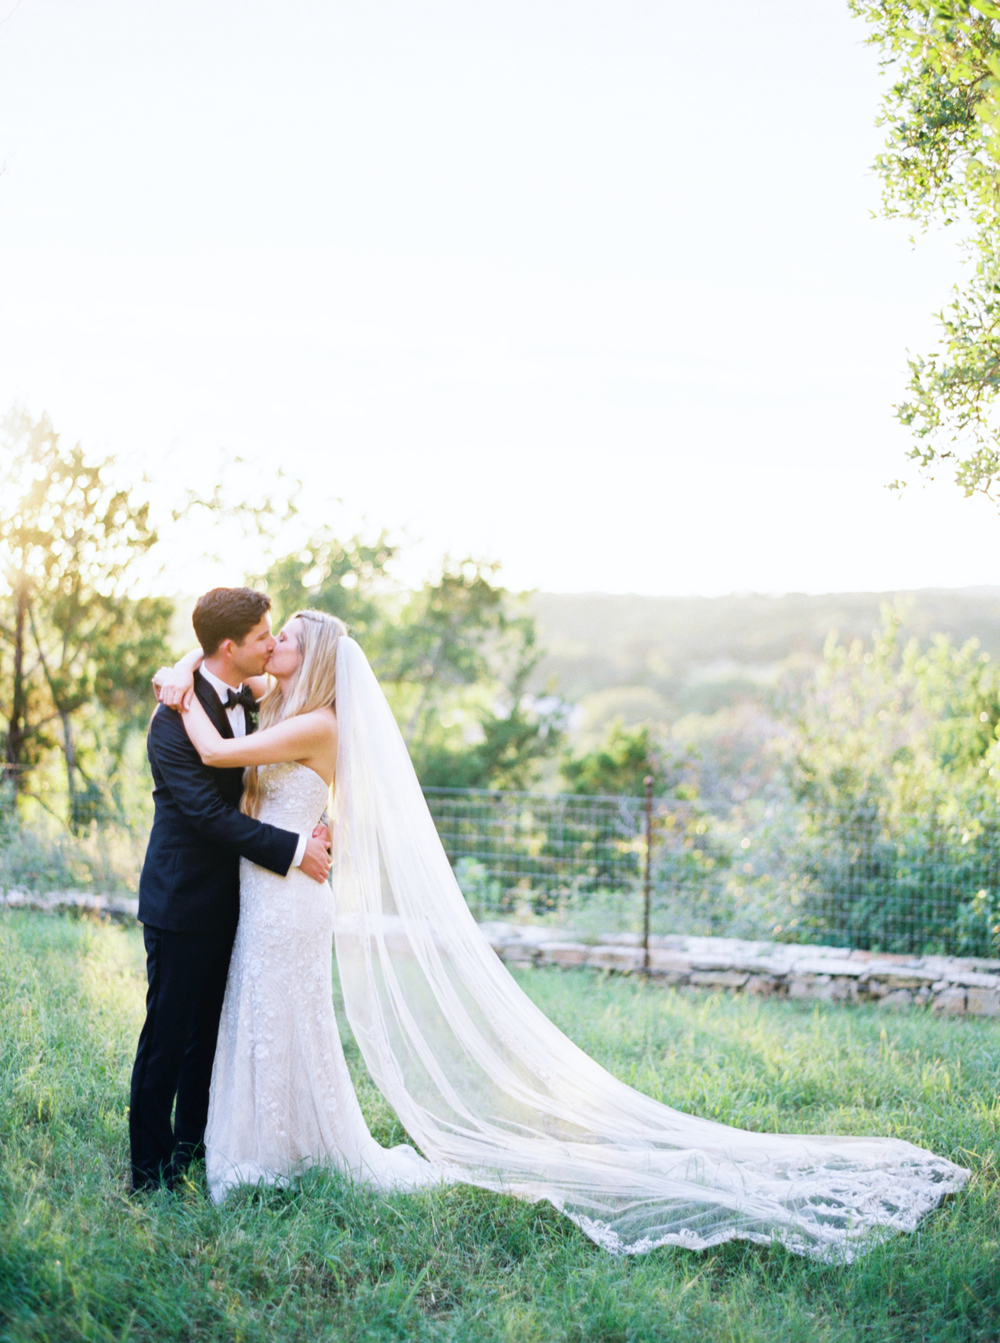 AUSTIN WEDDING PHOTOGRAPHER-58.jpg